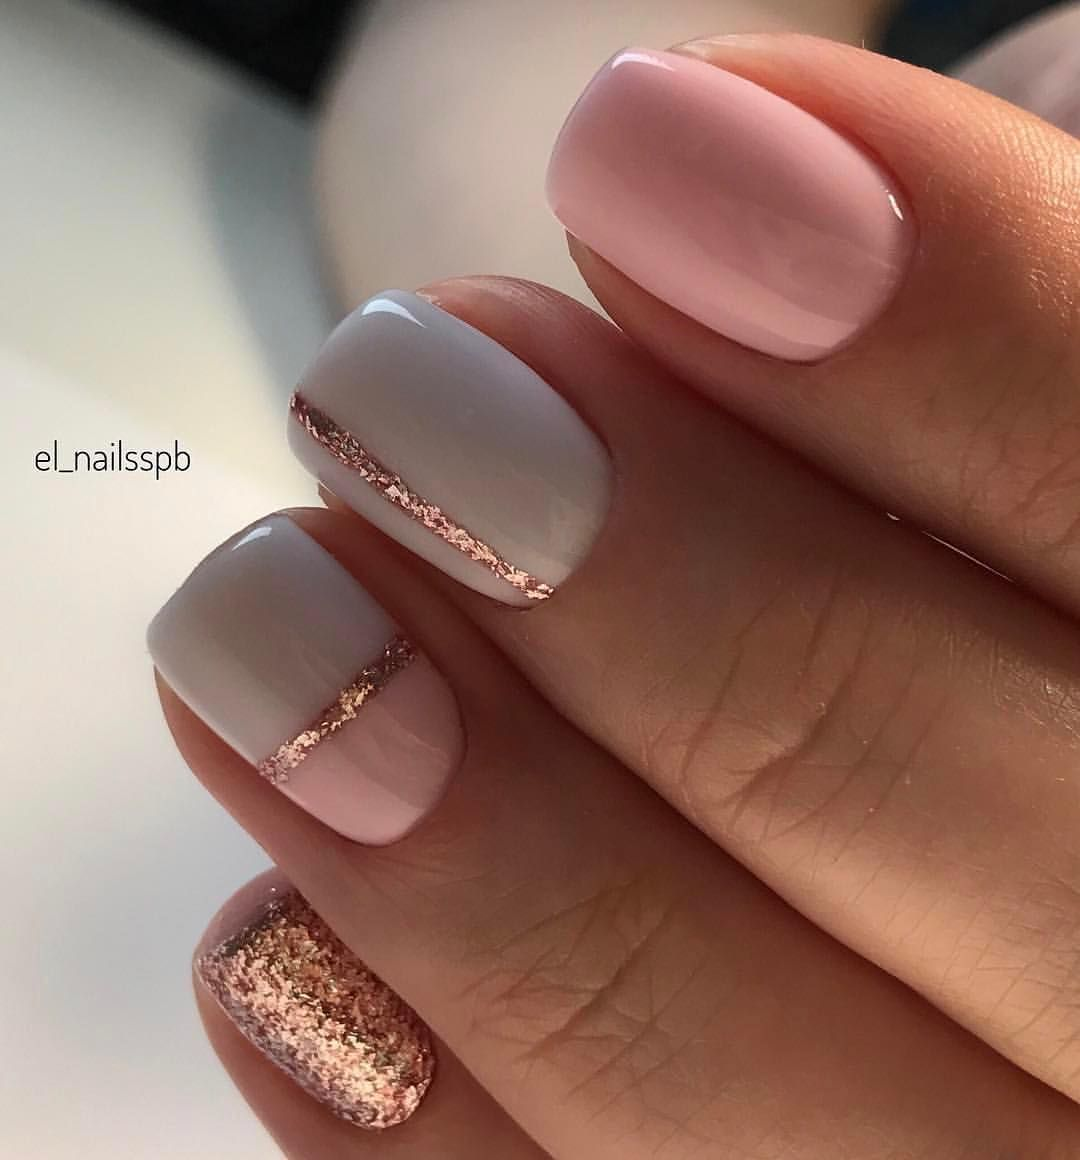 Pin by K K on Style | Pinterest | Manicure, Makeup and Nail nail